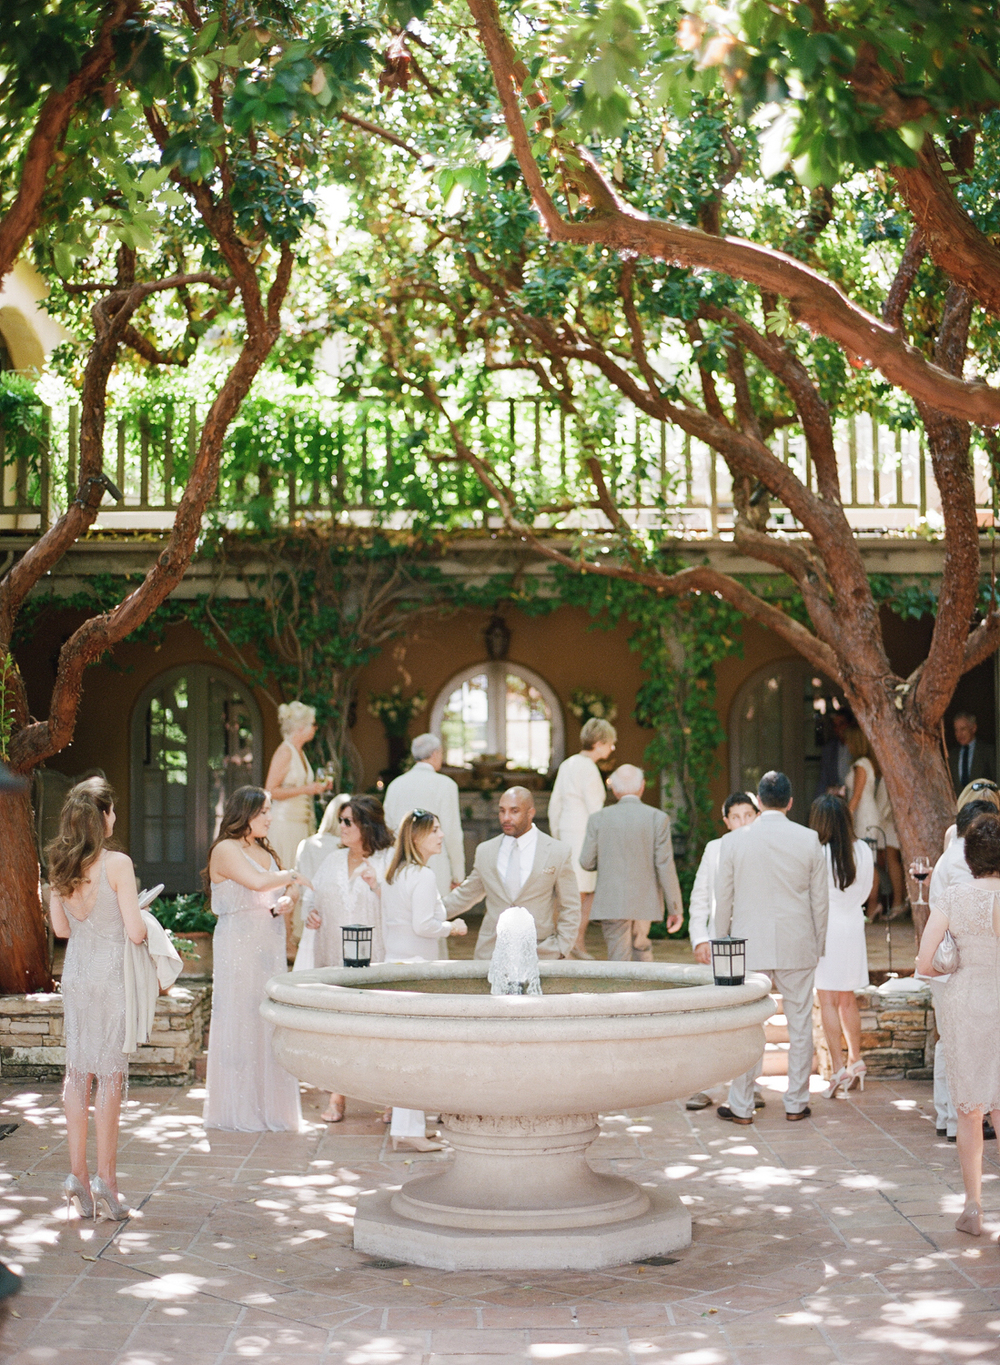 Guests and members of the bridal party mill around a fountain in the courtyard of the wedding venue, dressed in cream, white, and beige; photos by Sylvie Gil